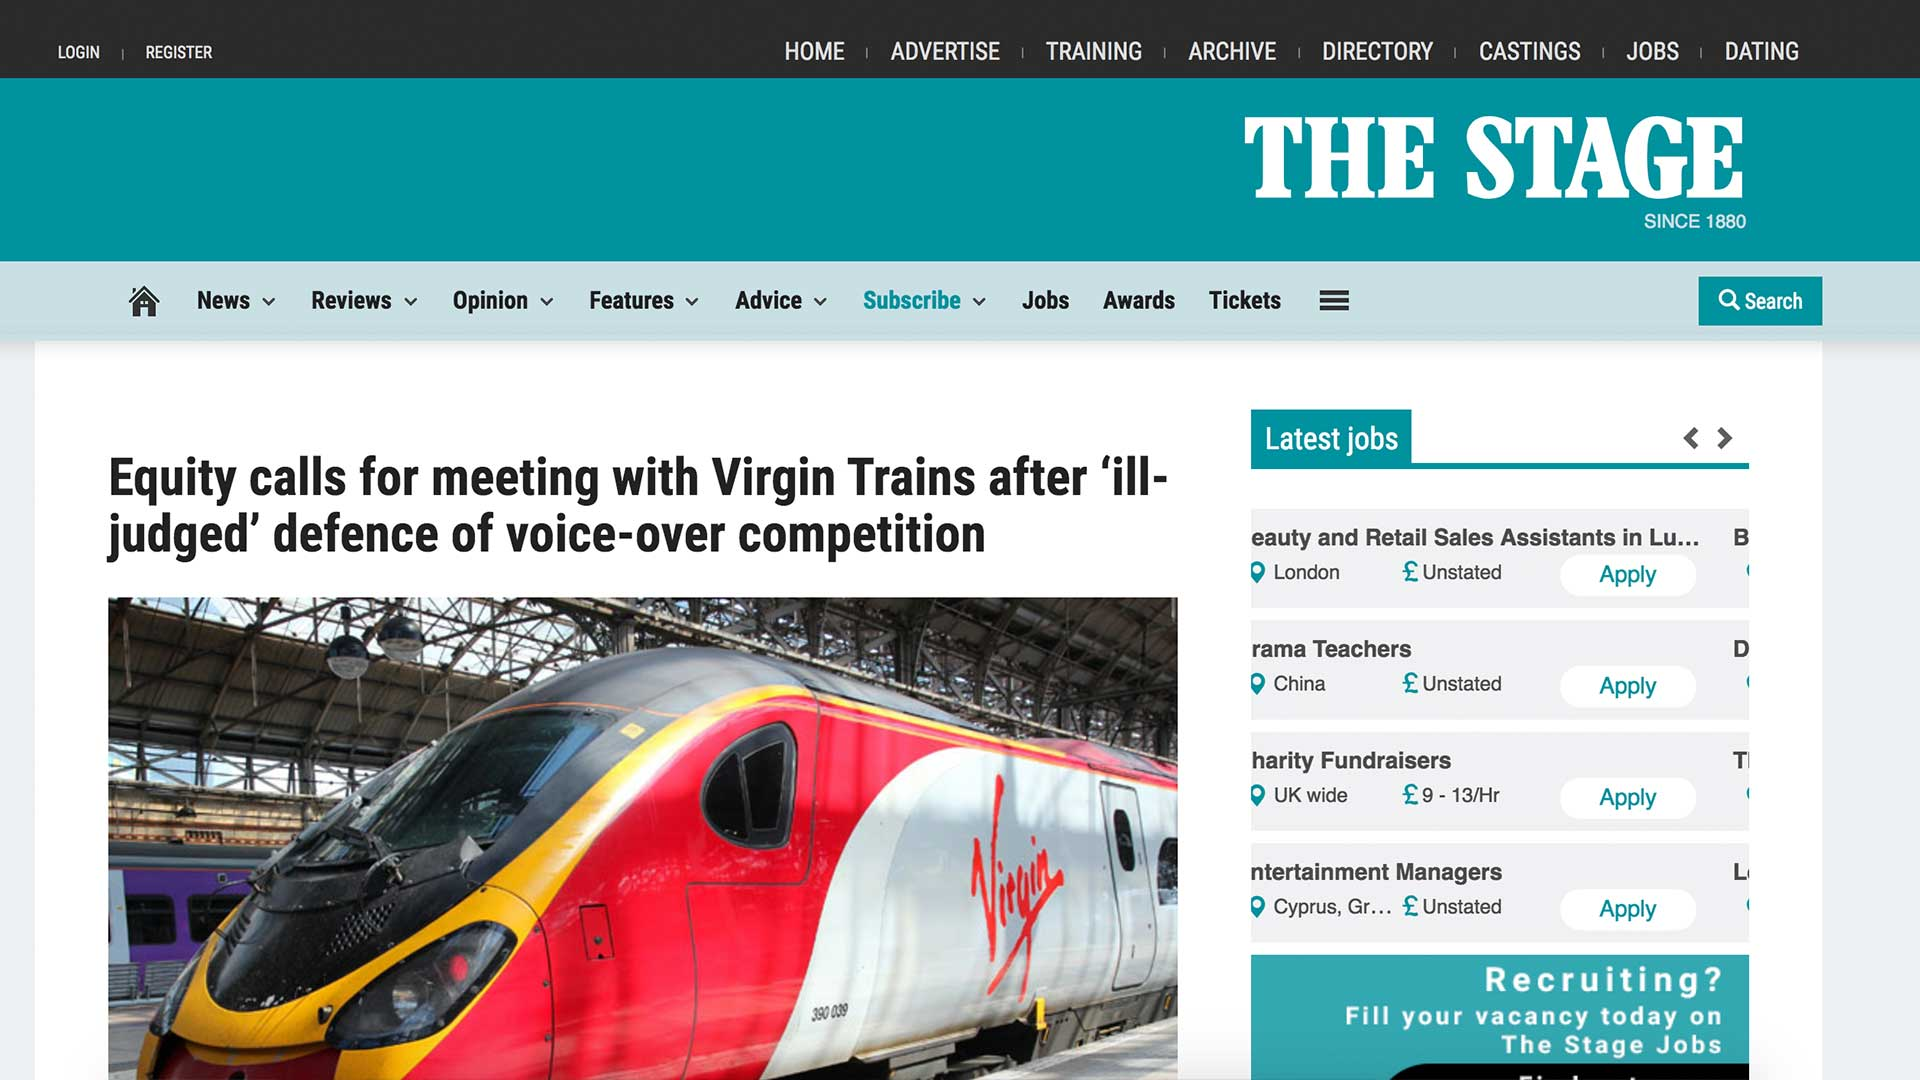 Fairness Rocks News Equity calls for meeting with Virgin Trains after 'ill-judged' defence of voice-over competition